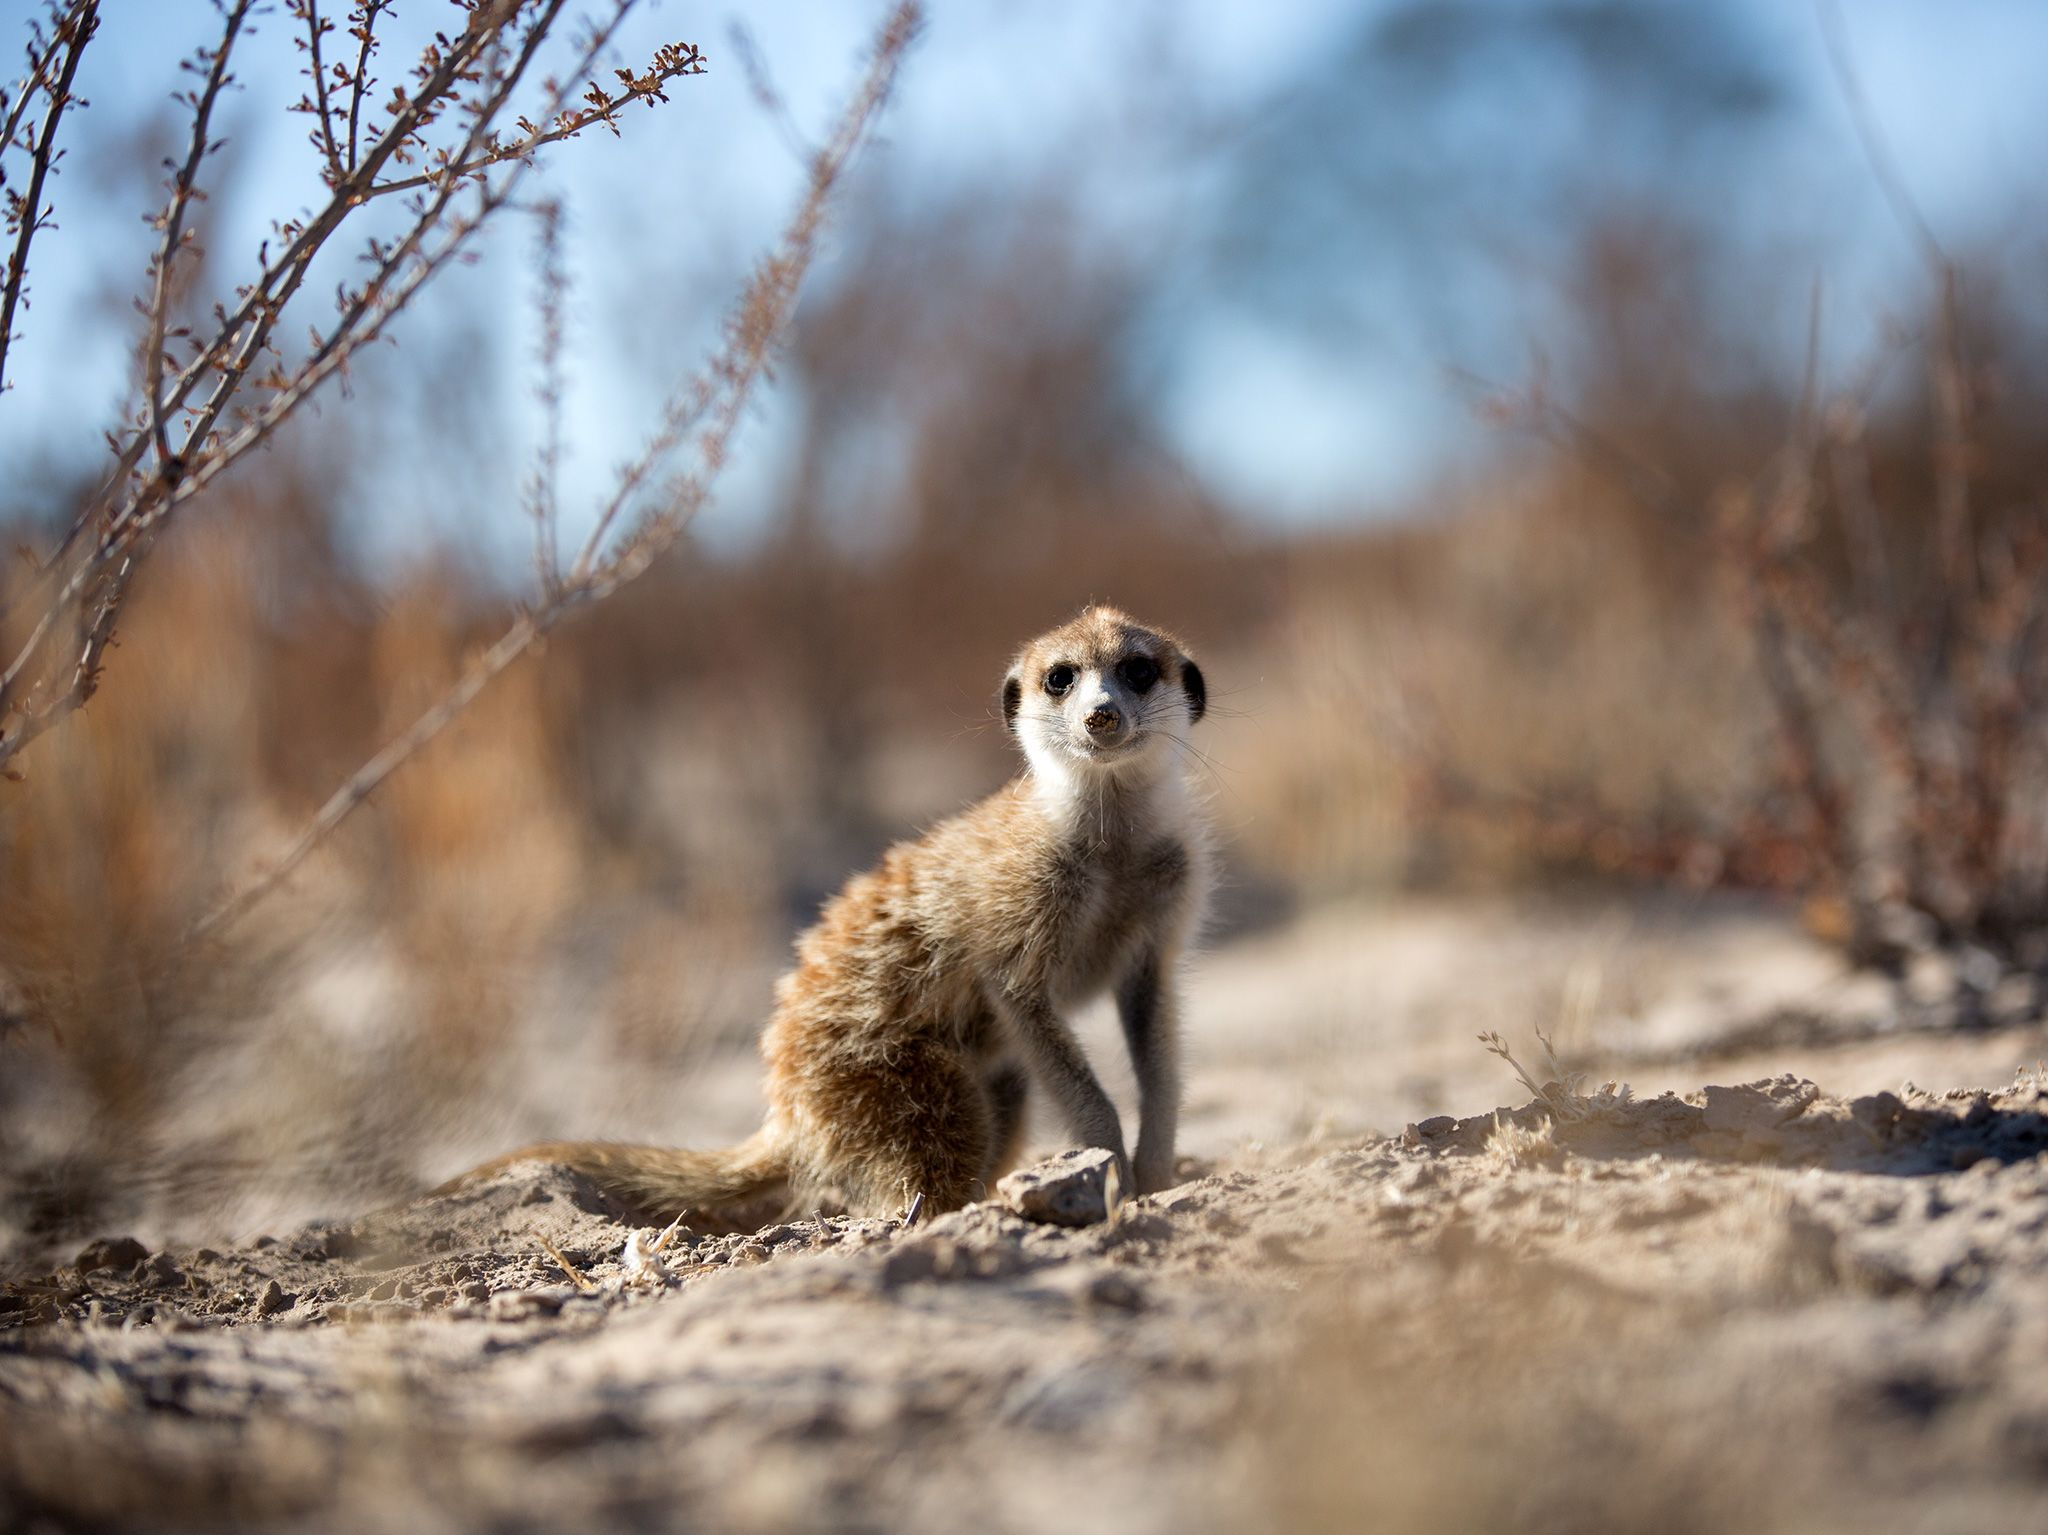 Portrait of a meerkat (Suricata suricatta) as it pauses in-between digging for grubs and insects... [Foto del giorno - aprile 2019]